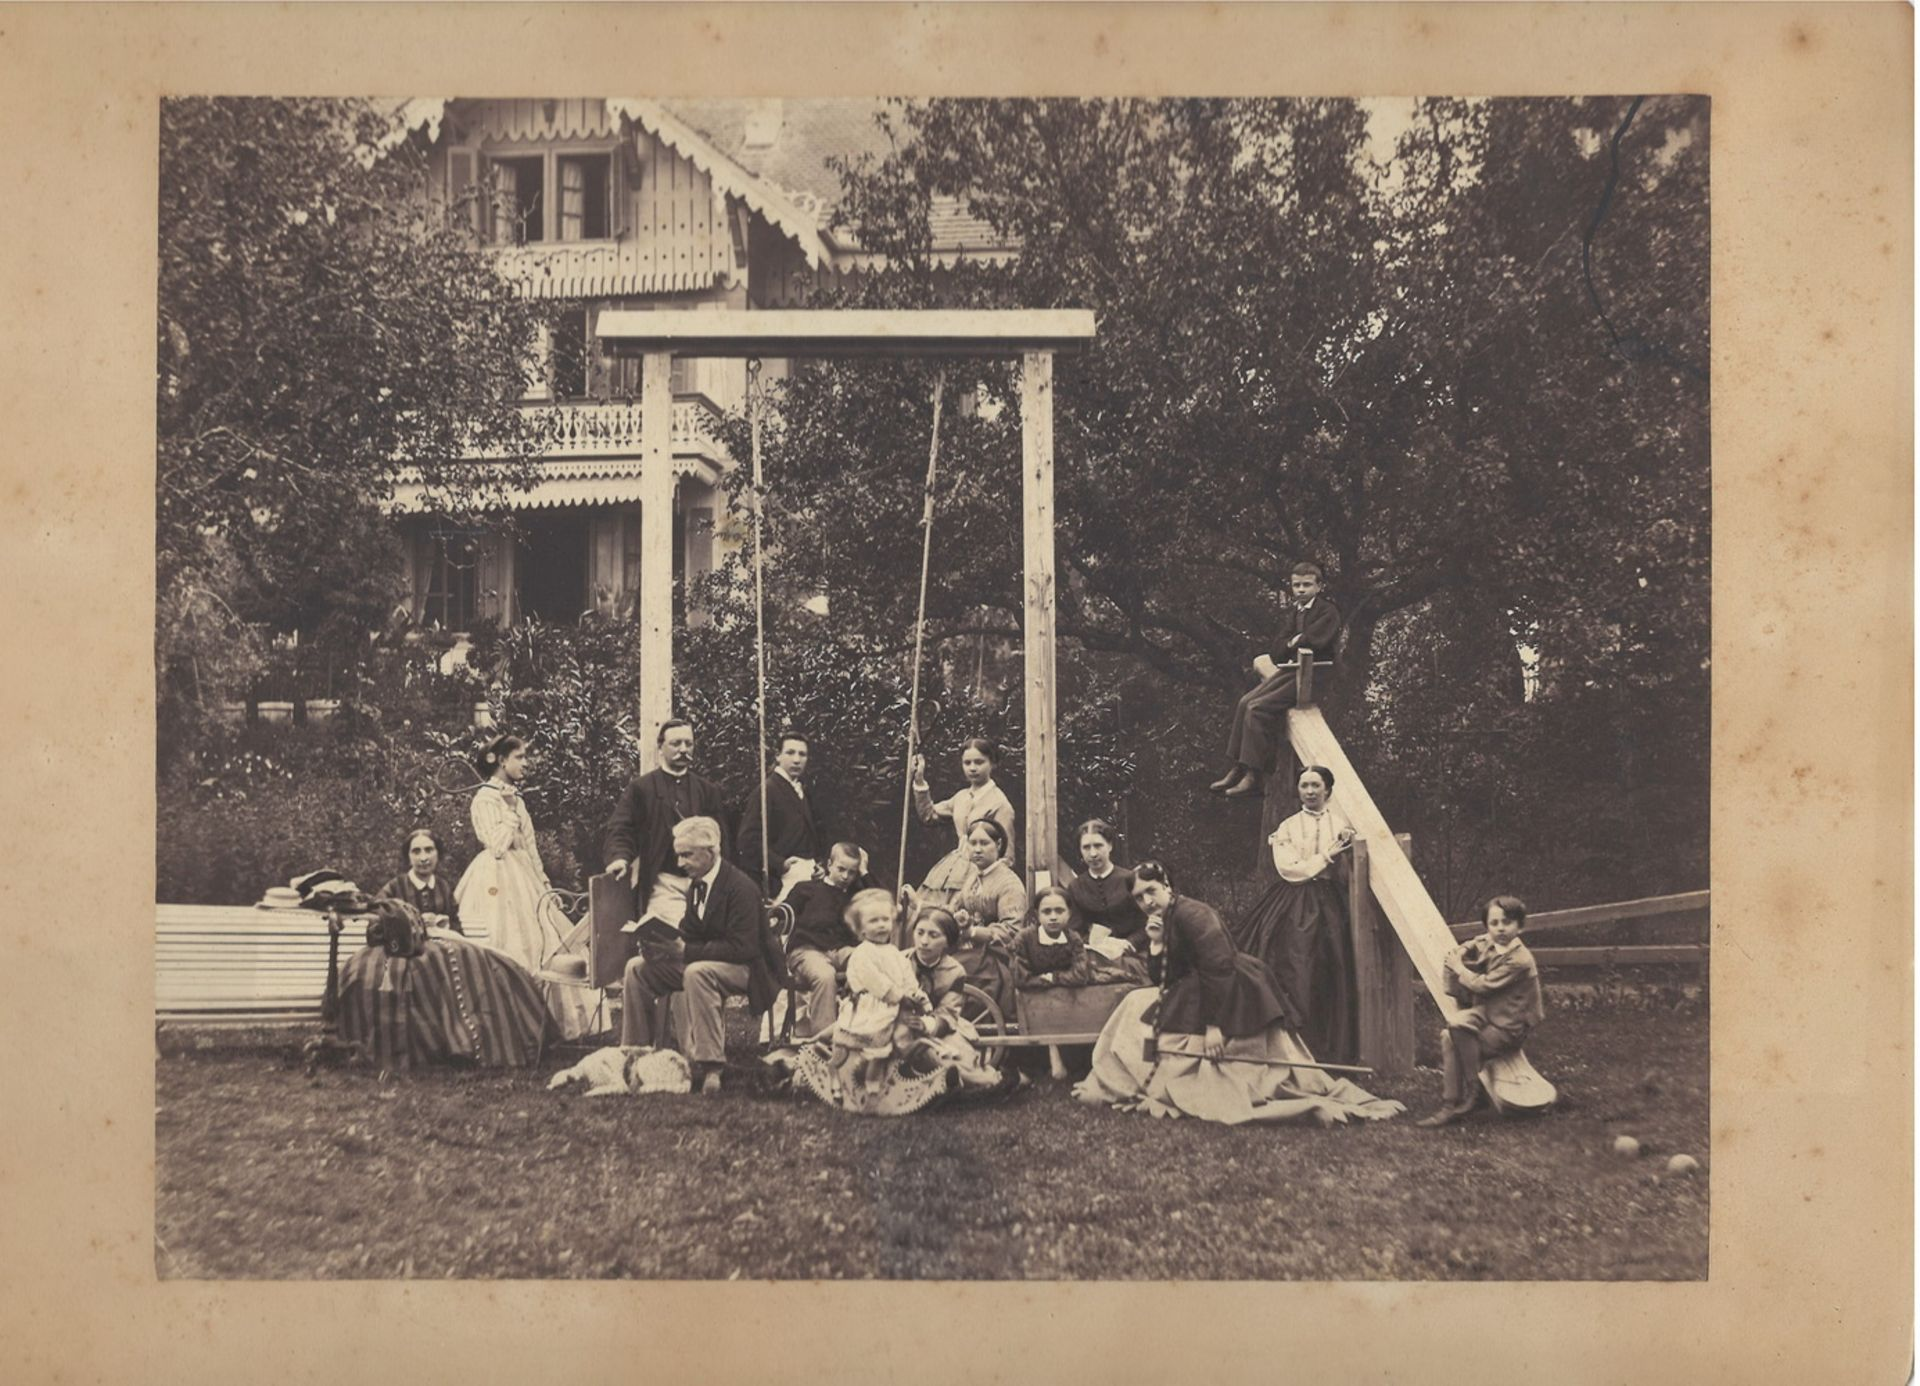 [Russian Empire]. 2 group family portraits. Photographs. Vintage prints. Late 19th century. 22x30 -